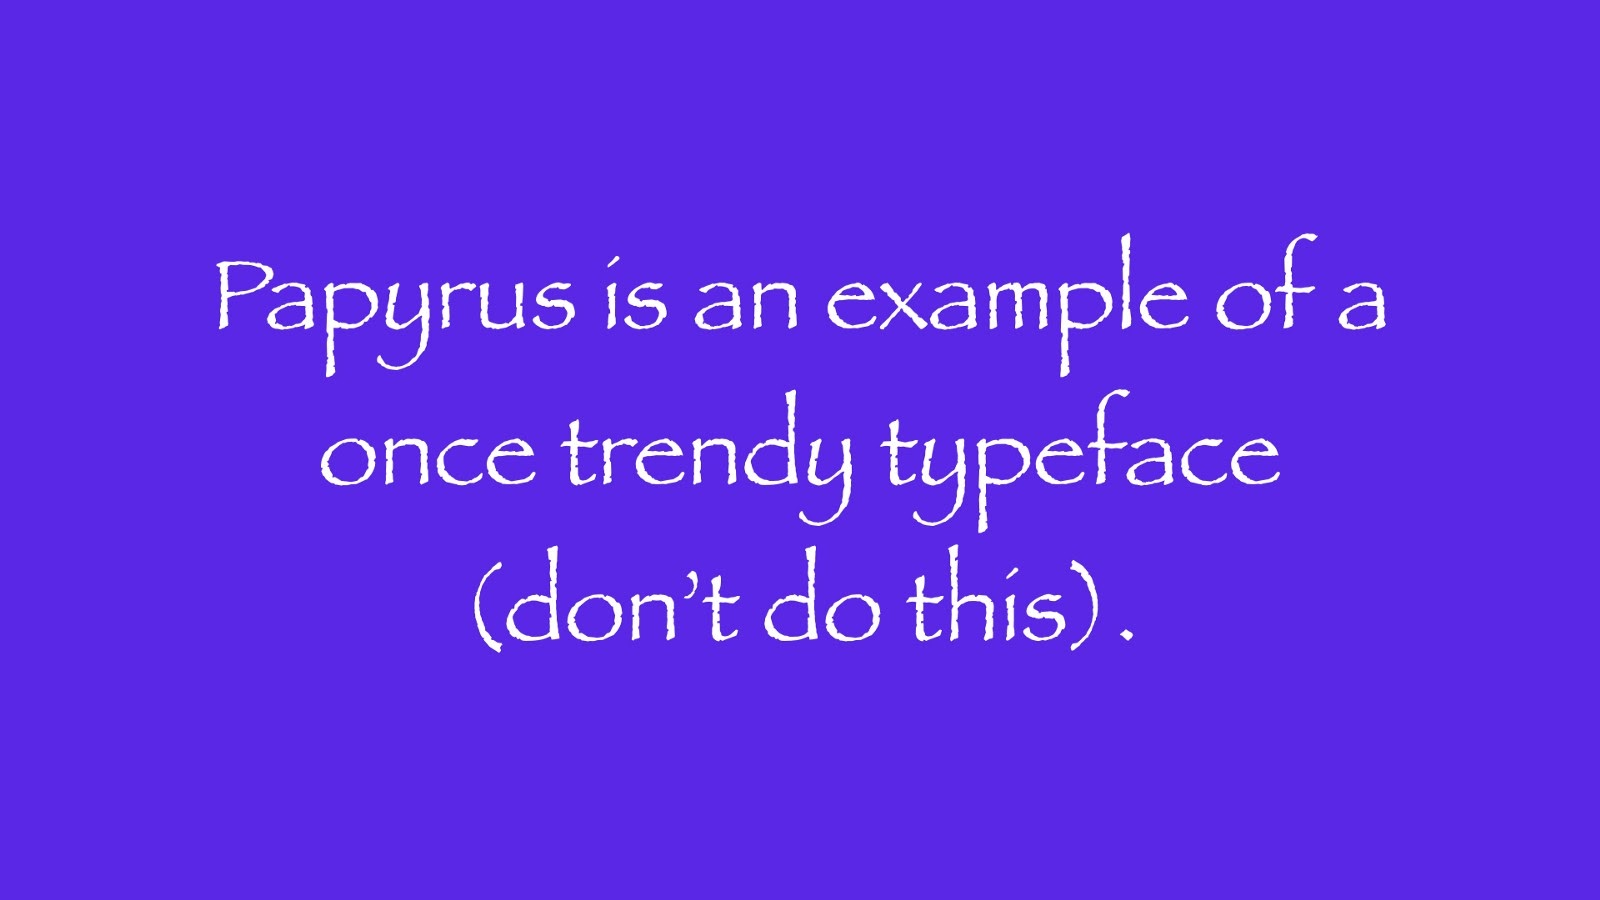 Papyrus is an example of a once trendy typeface (don't do this).